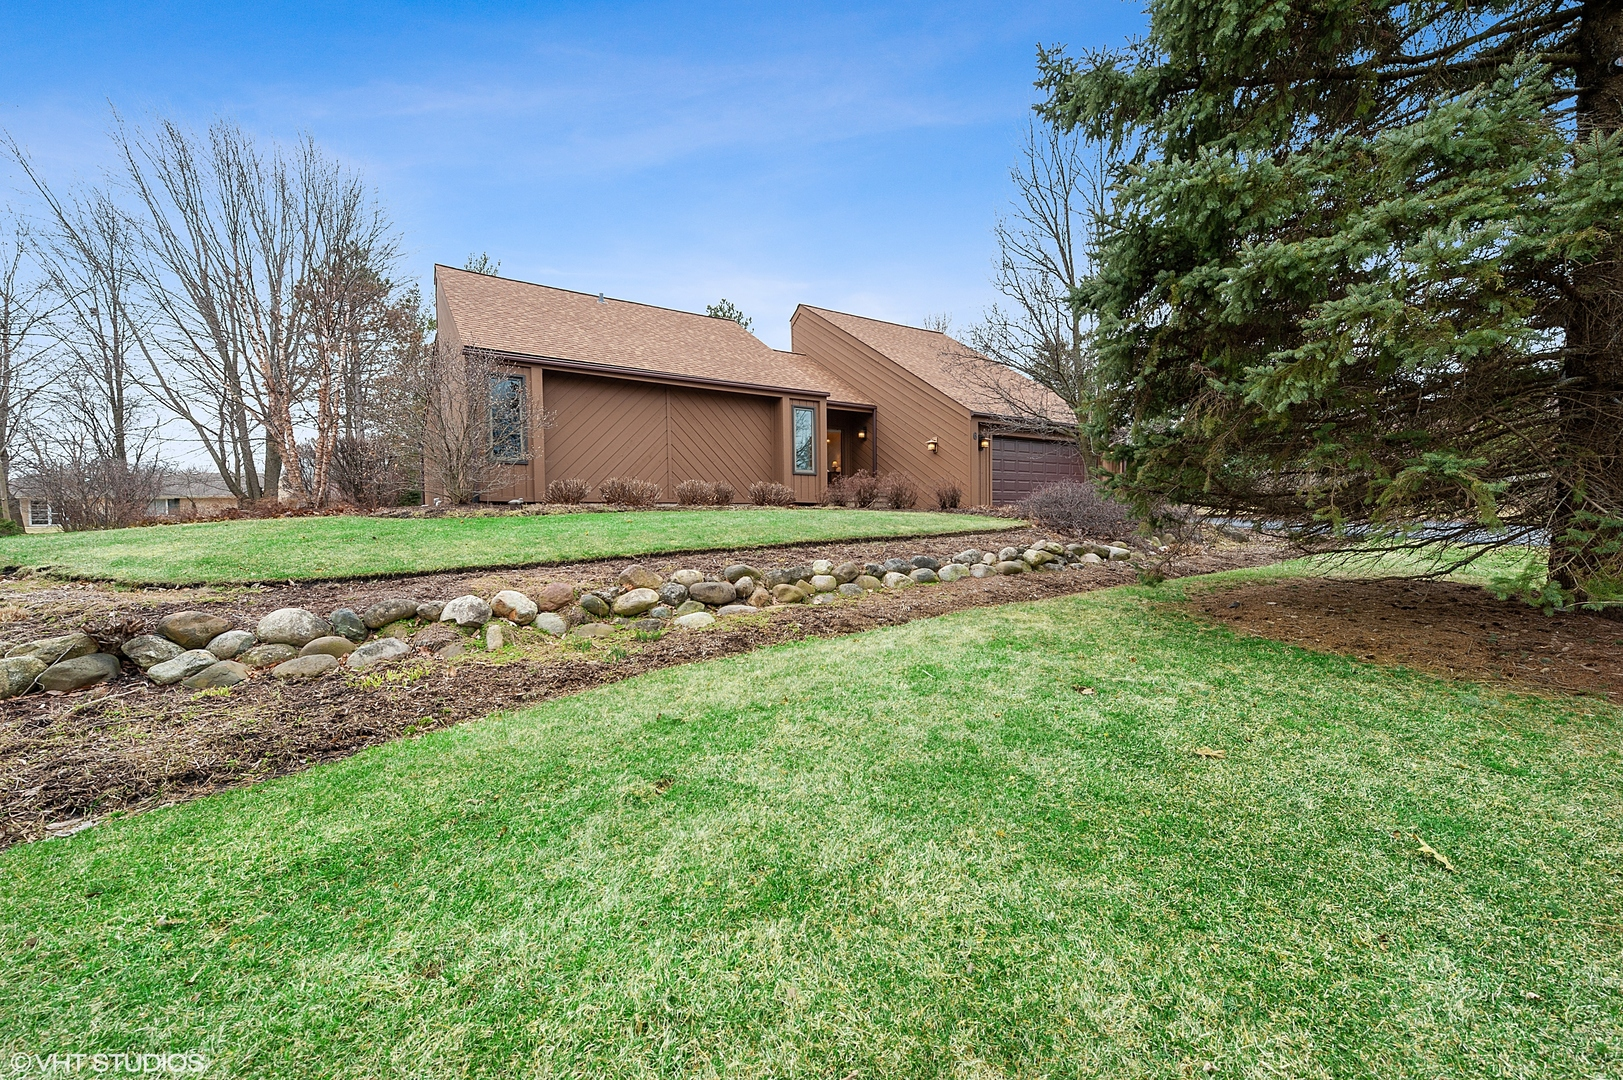 6 Chipping Campden Drive, South Barrington, Illinois